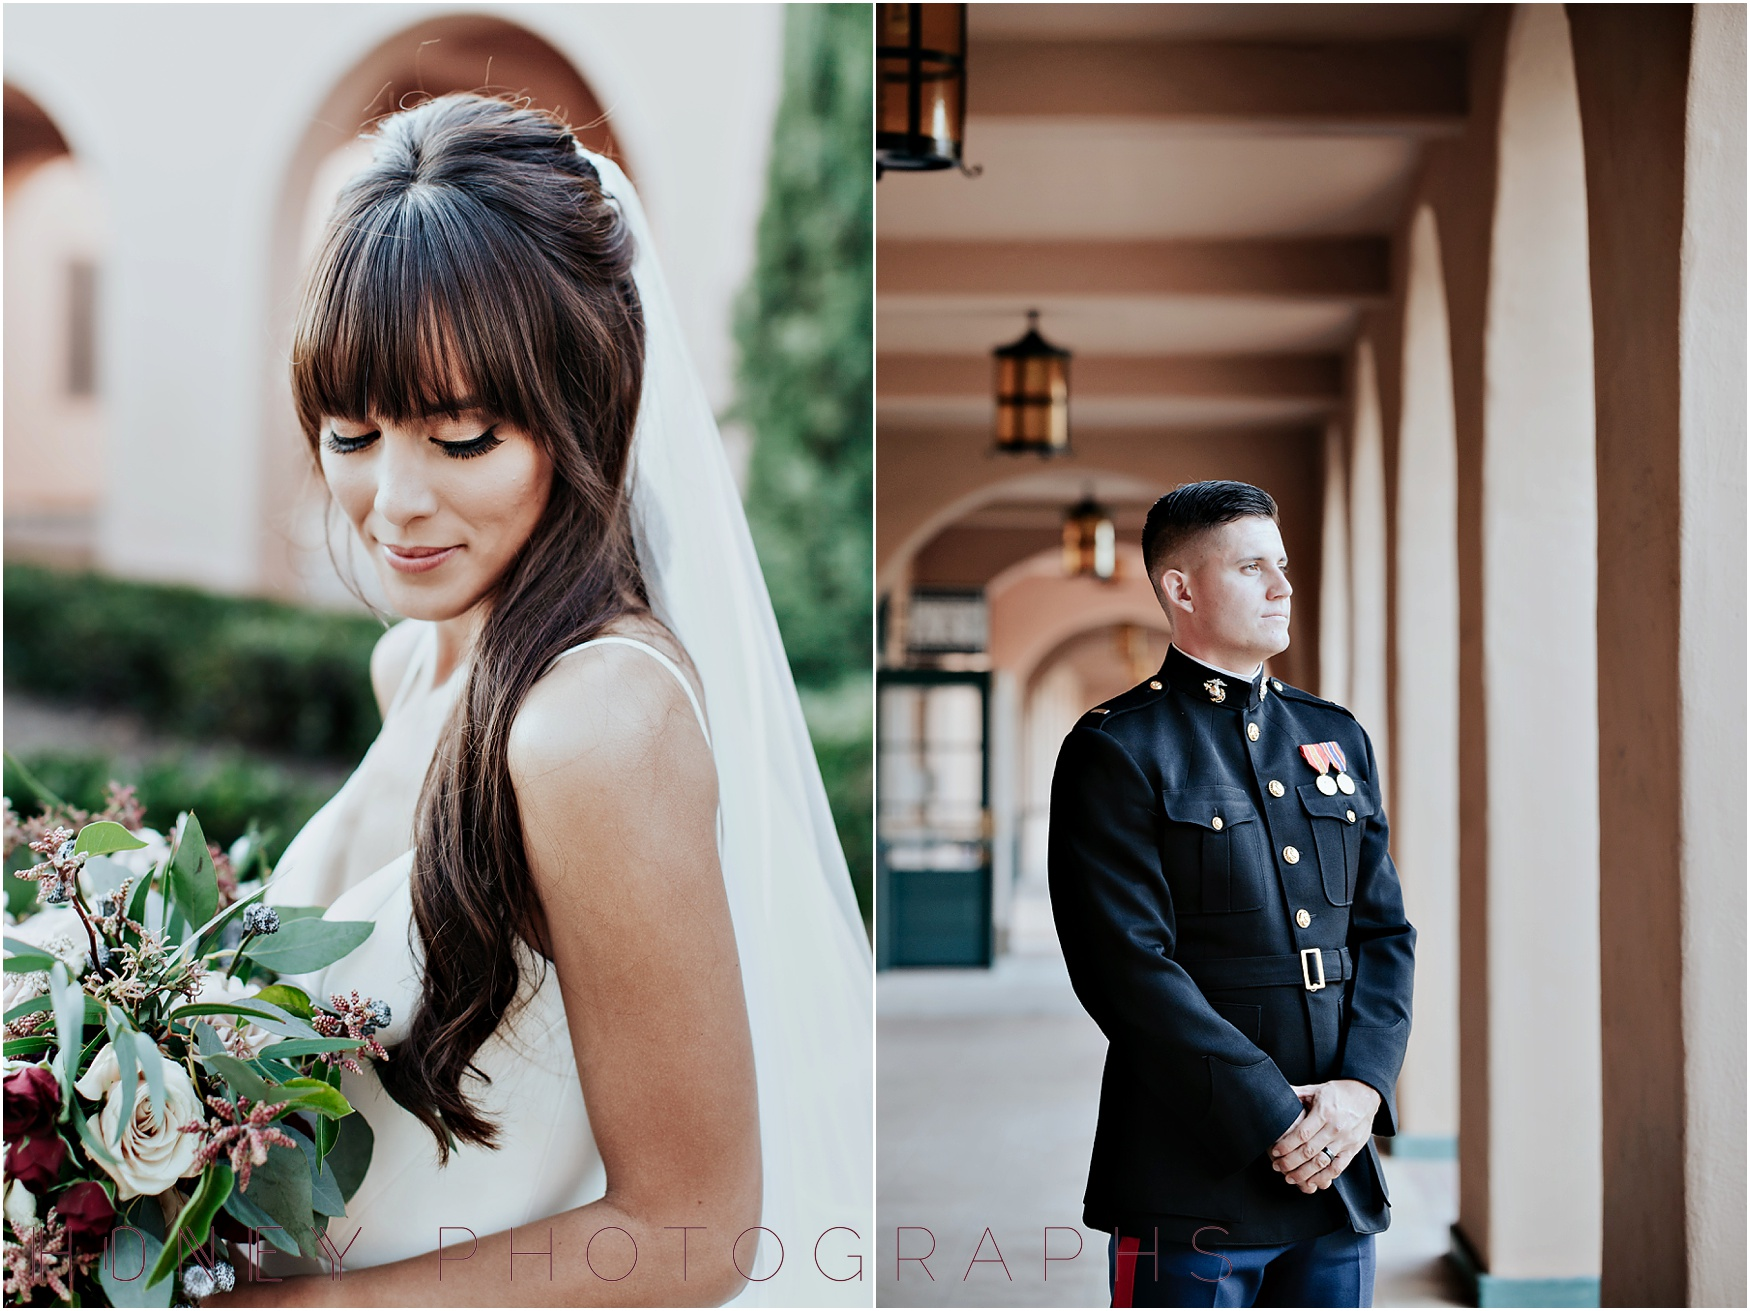 bricksandiegomilitaryurbanwedding0033.JPG